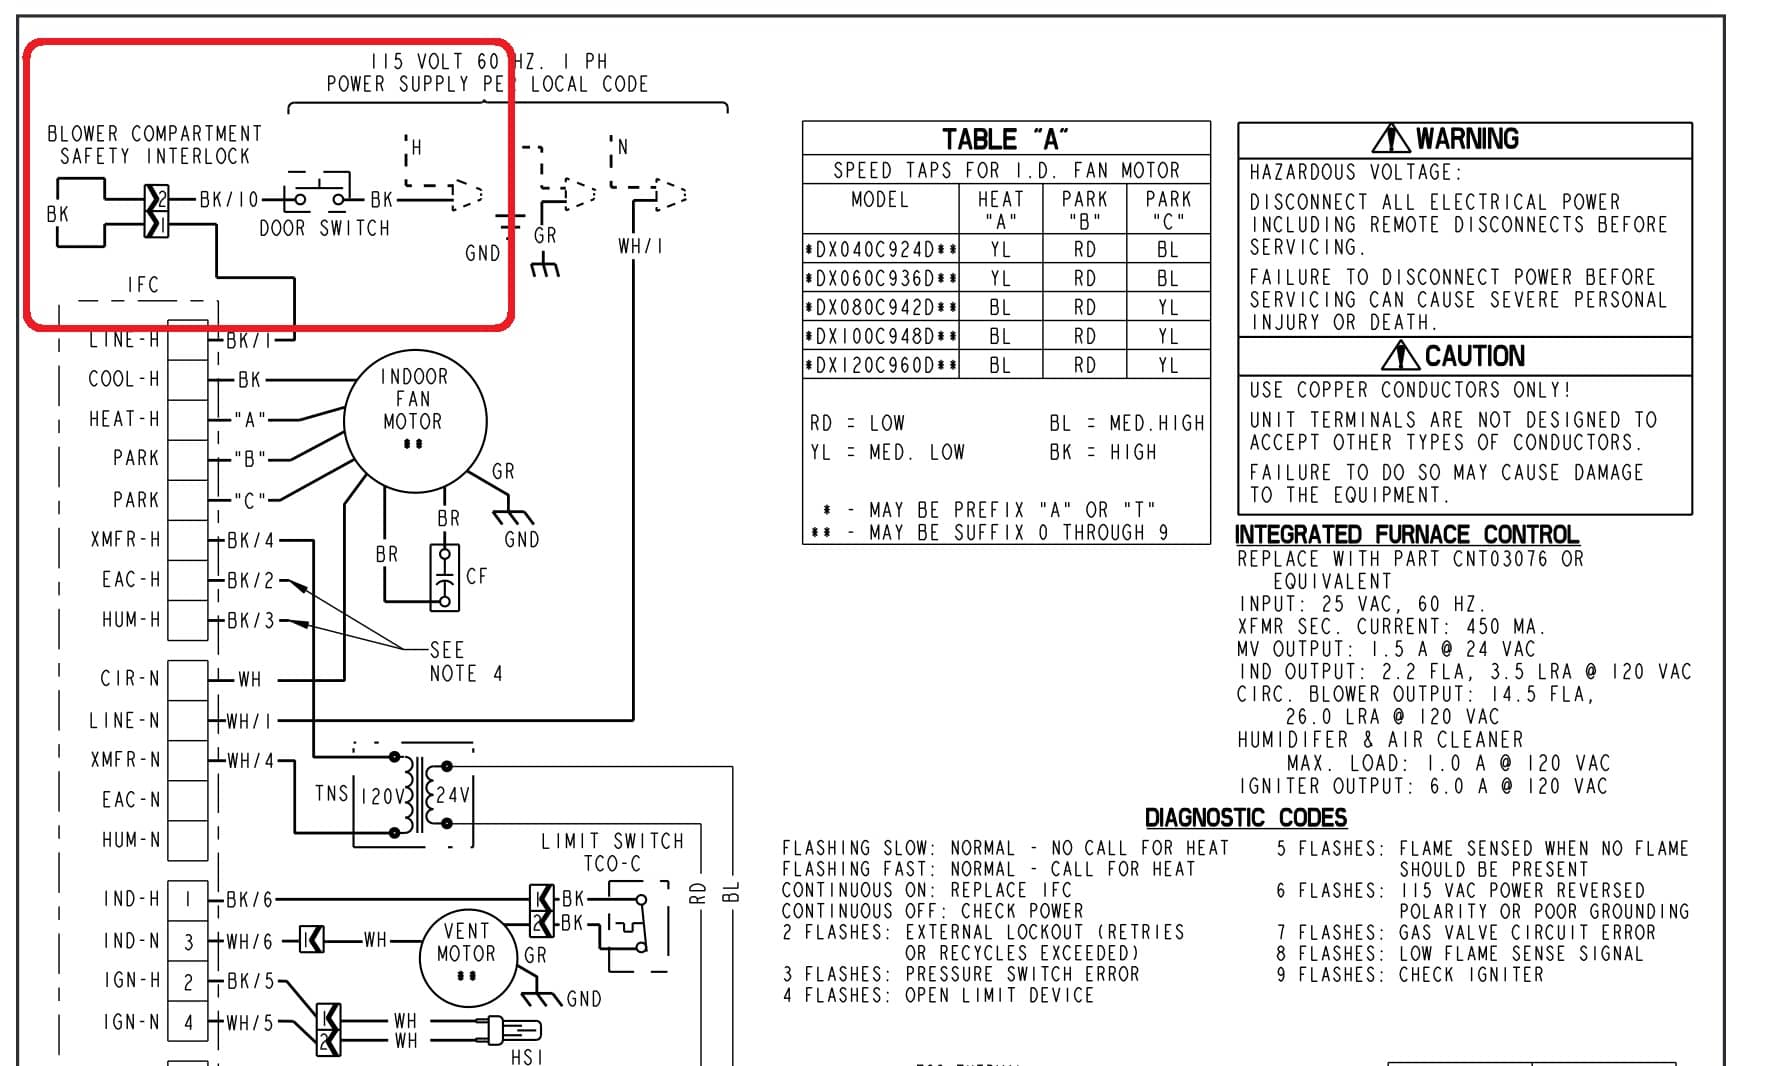 Electrical Interlock Wiring Diagram on carrier contactor wiring diagram